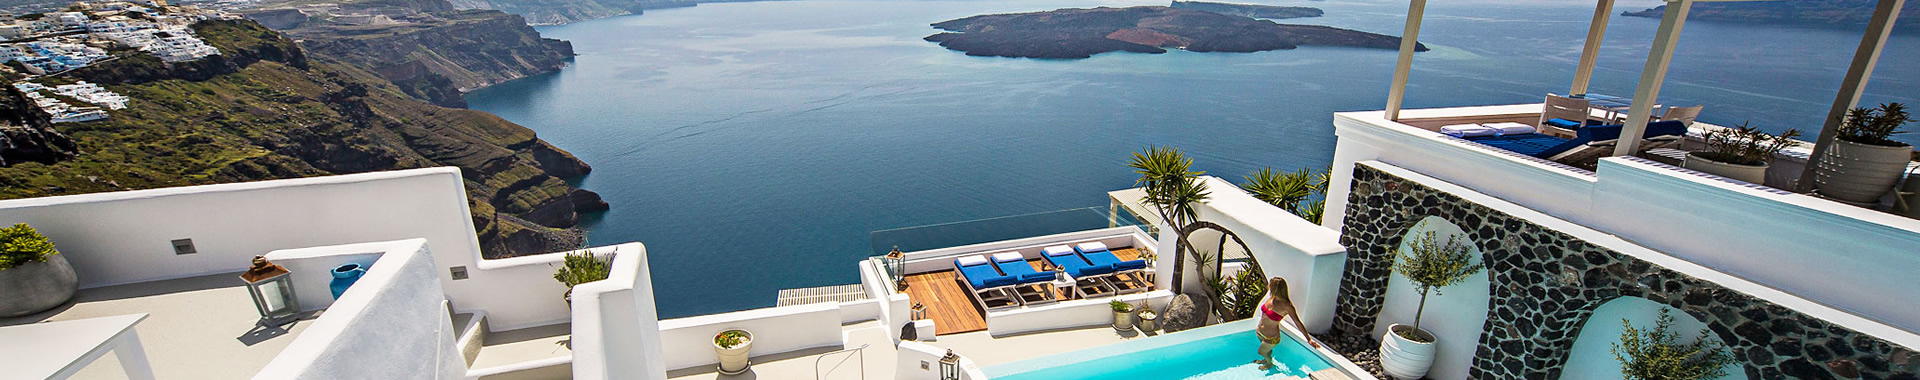 Fira, Akrotiri, Kamari or Vourvoulos Hotels in Santorini island, Greece